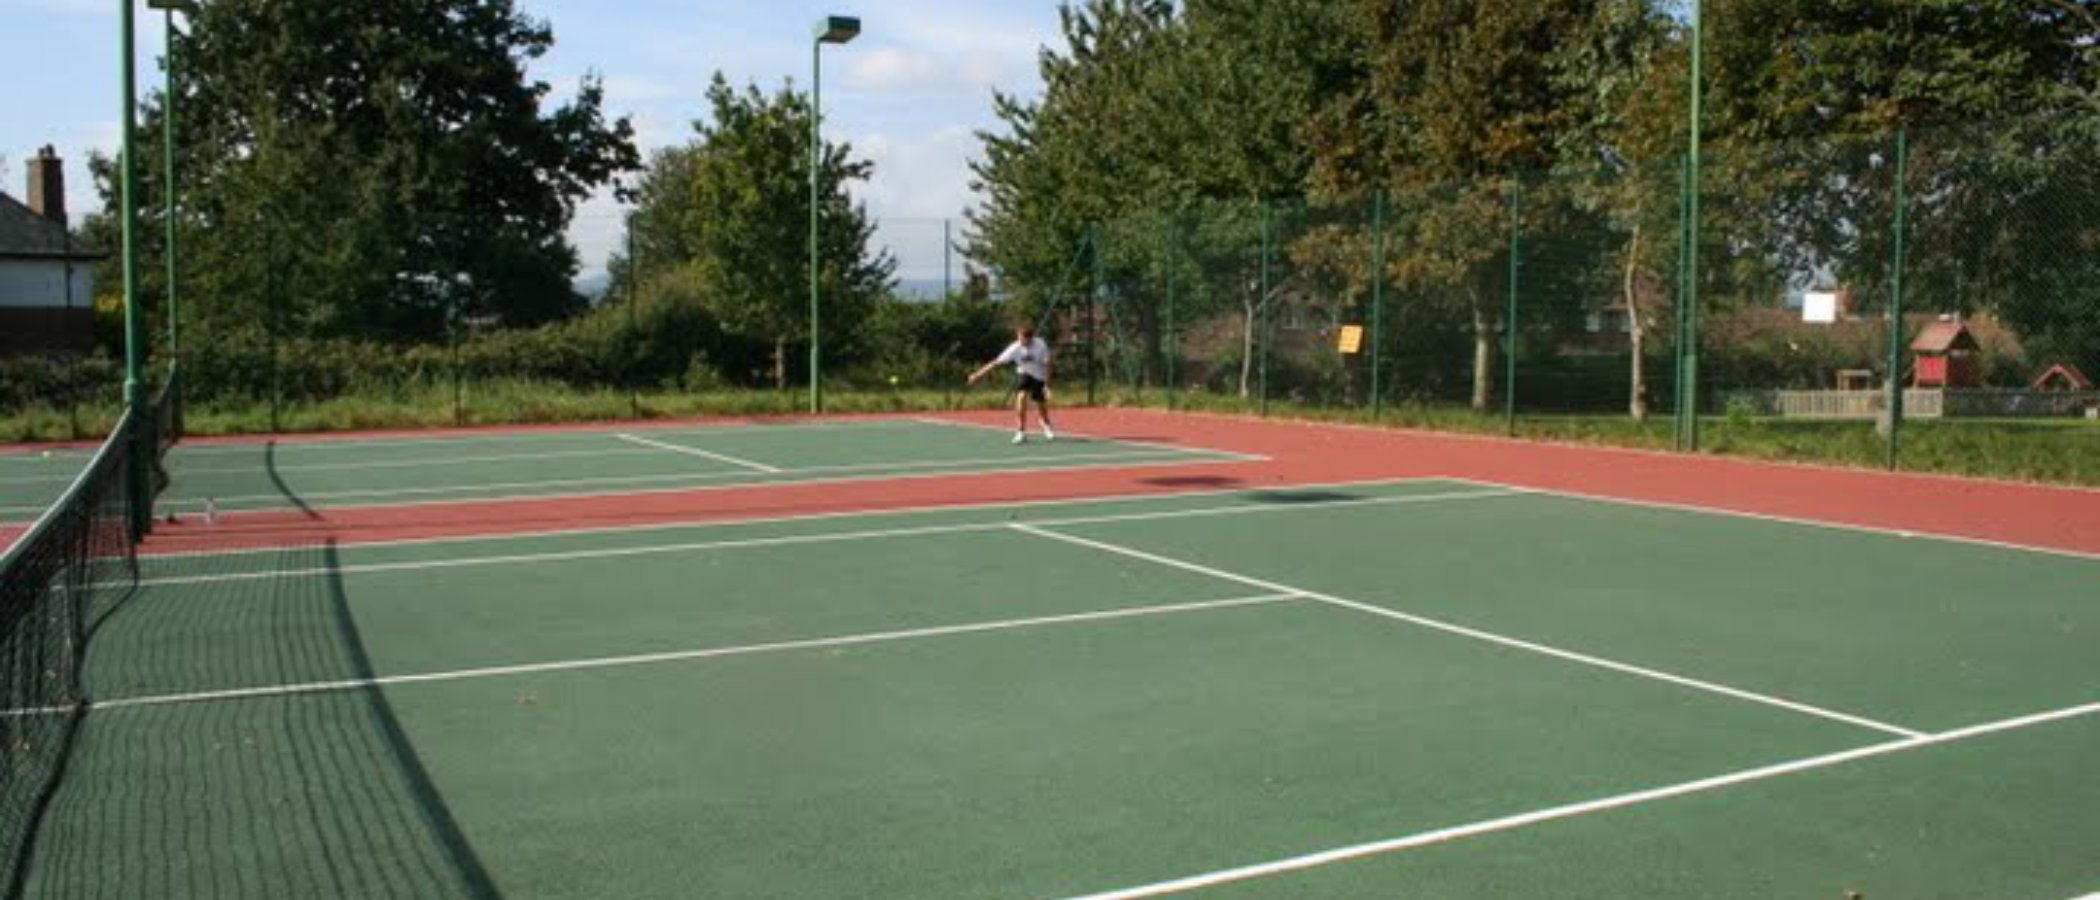 Tennis Court Lympstone